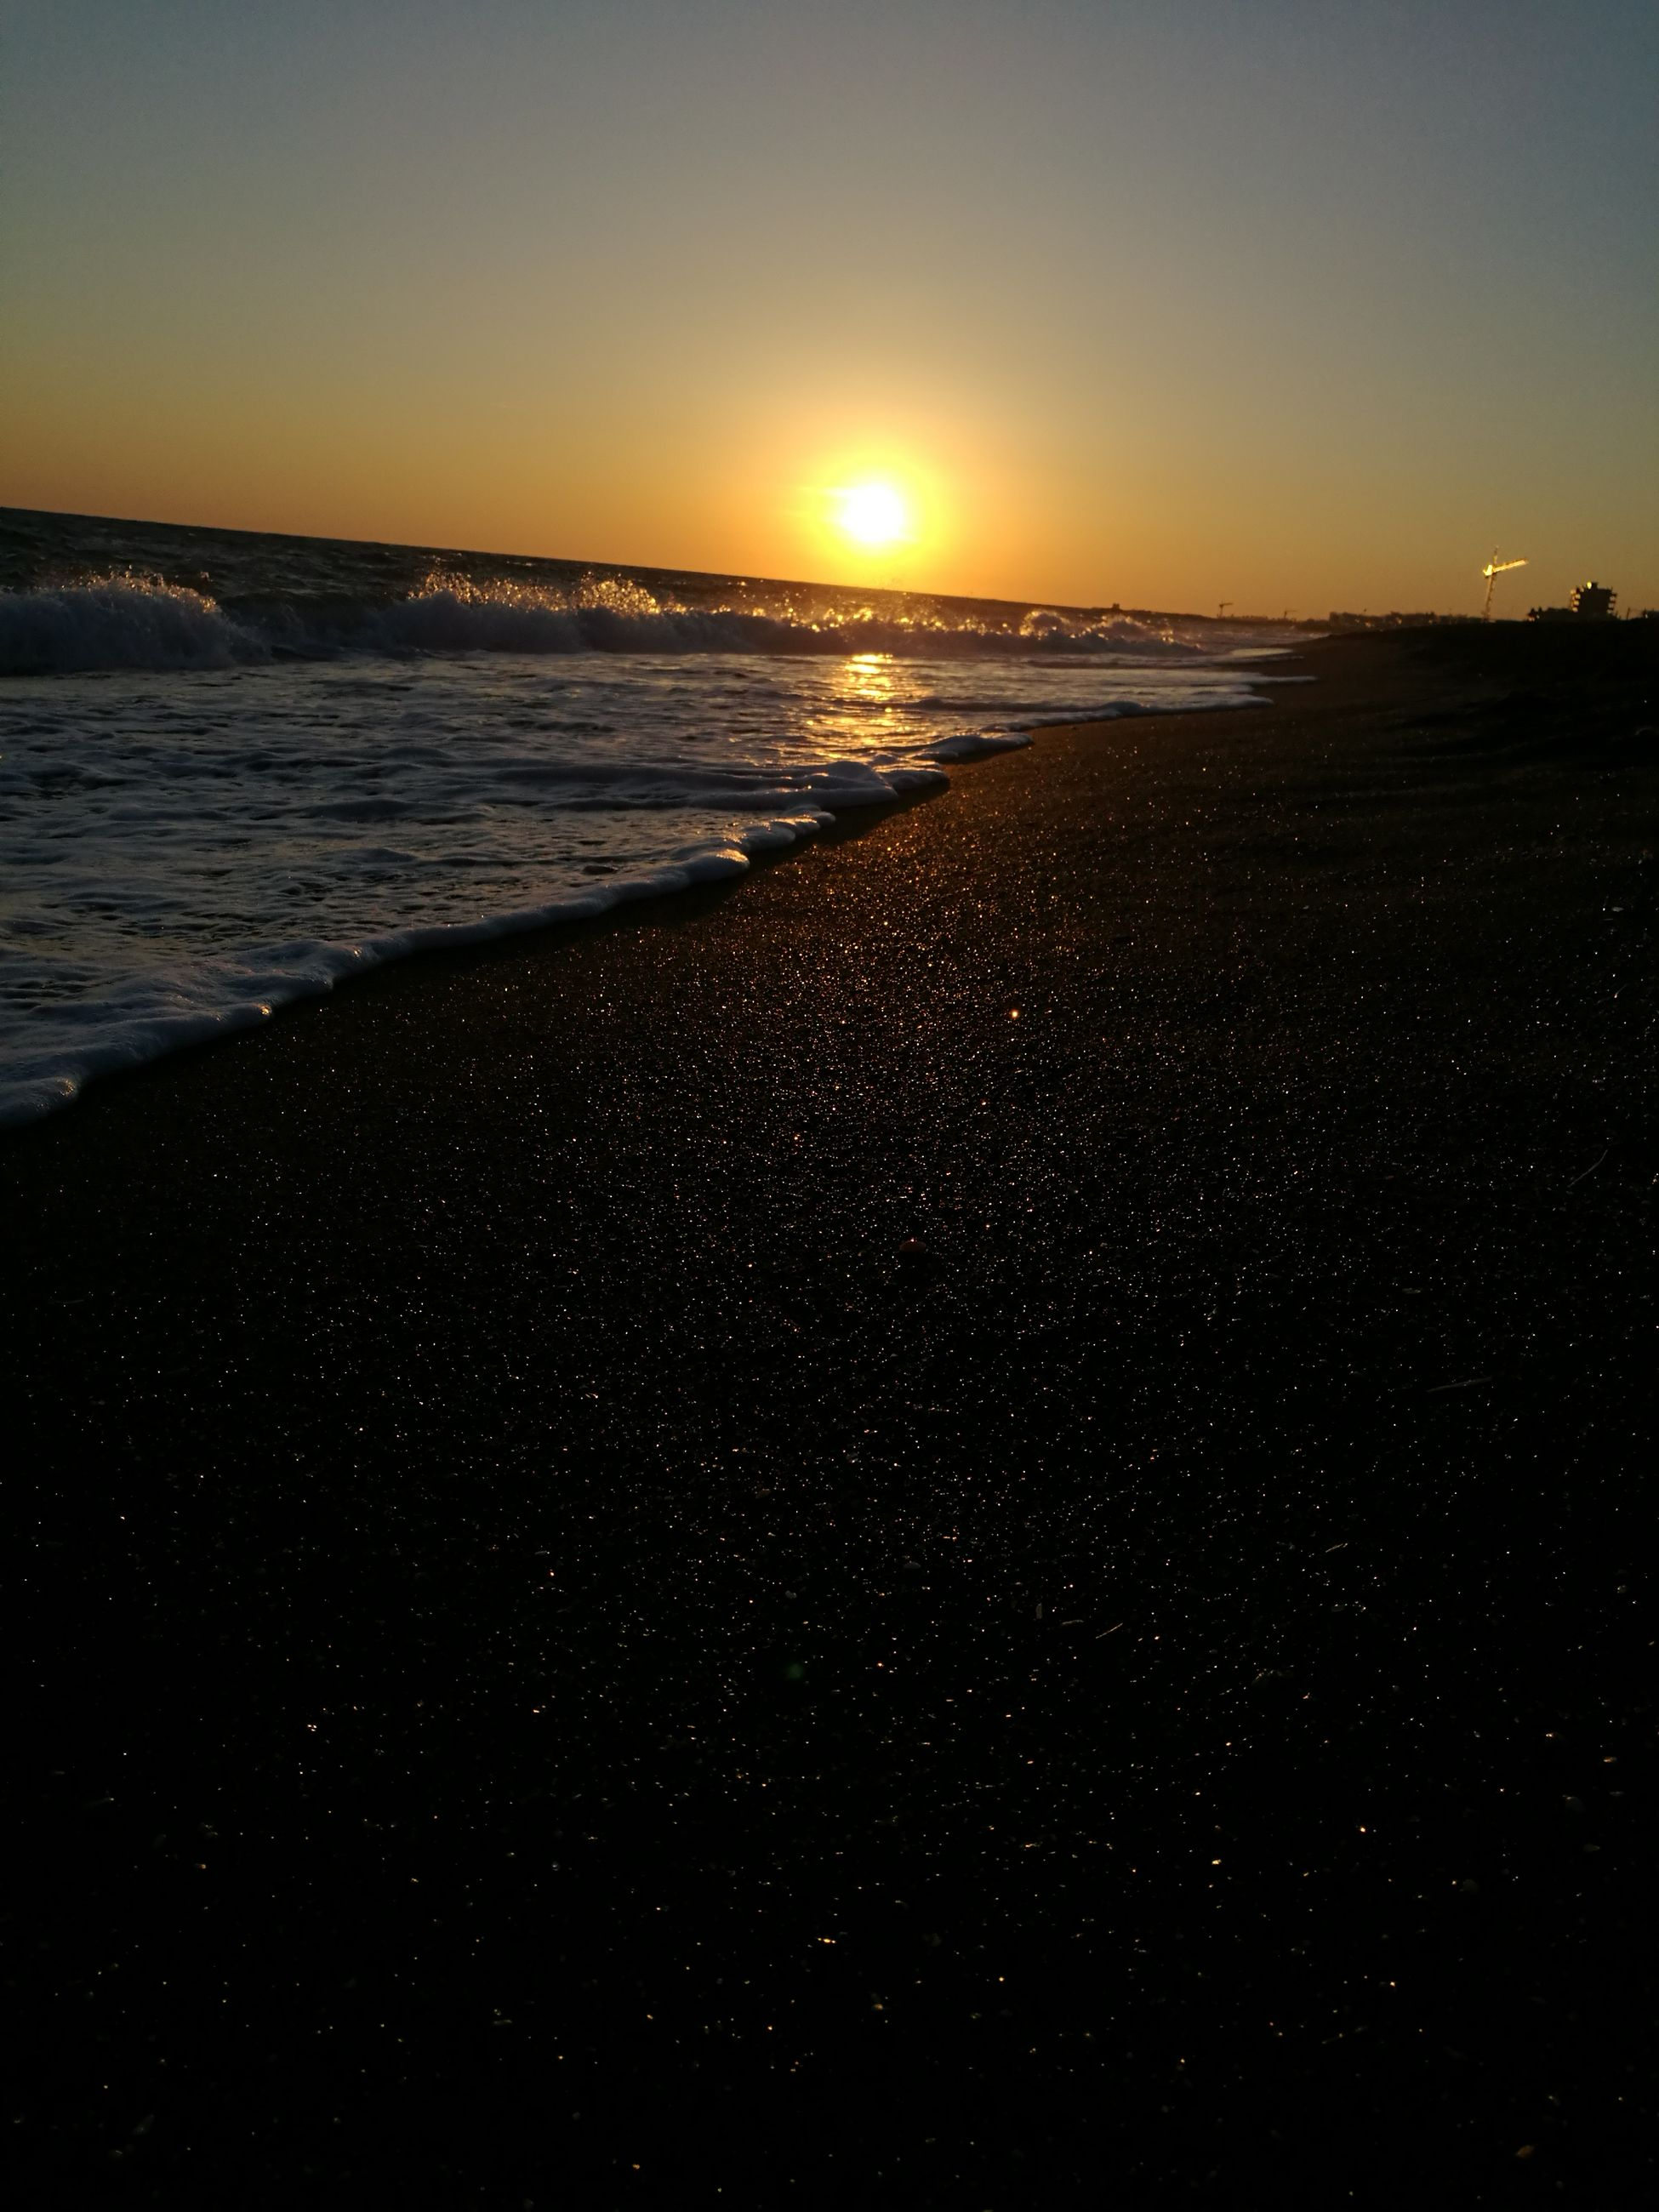 sunset, sea, nature, beauty in nature, beach, water, scenics, tranquility, tranquil scene, sky, sun, no people, outdoors, silhouette, wave, day